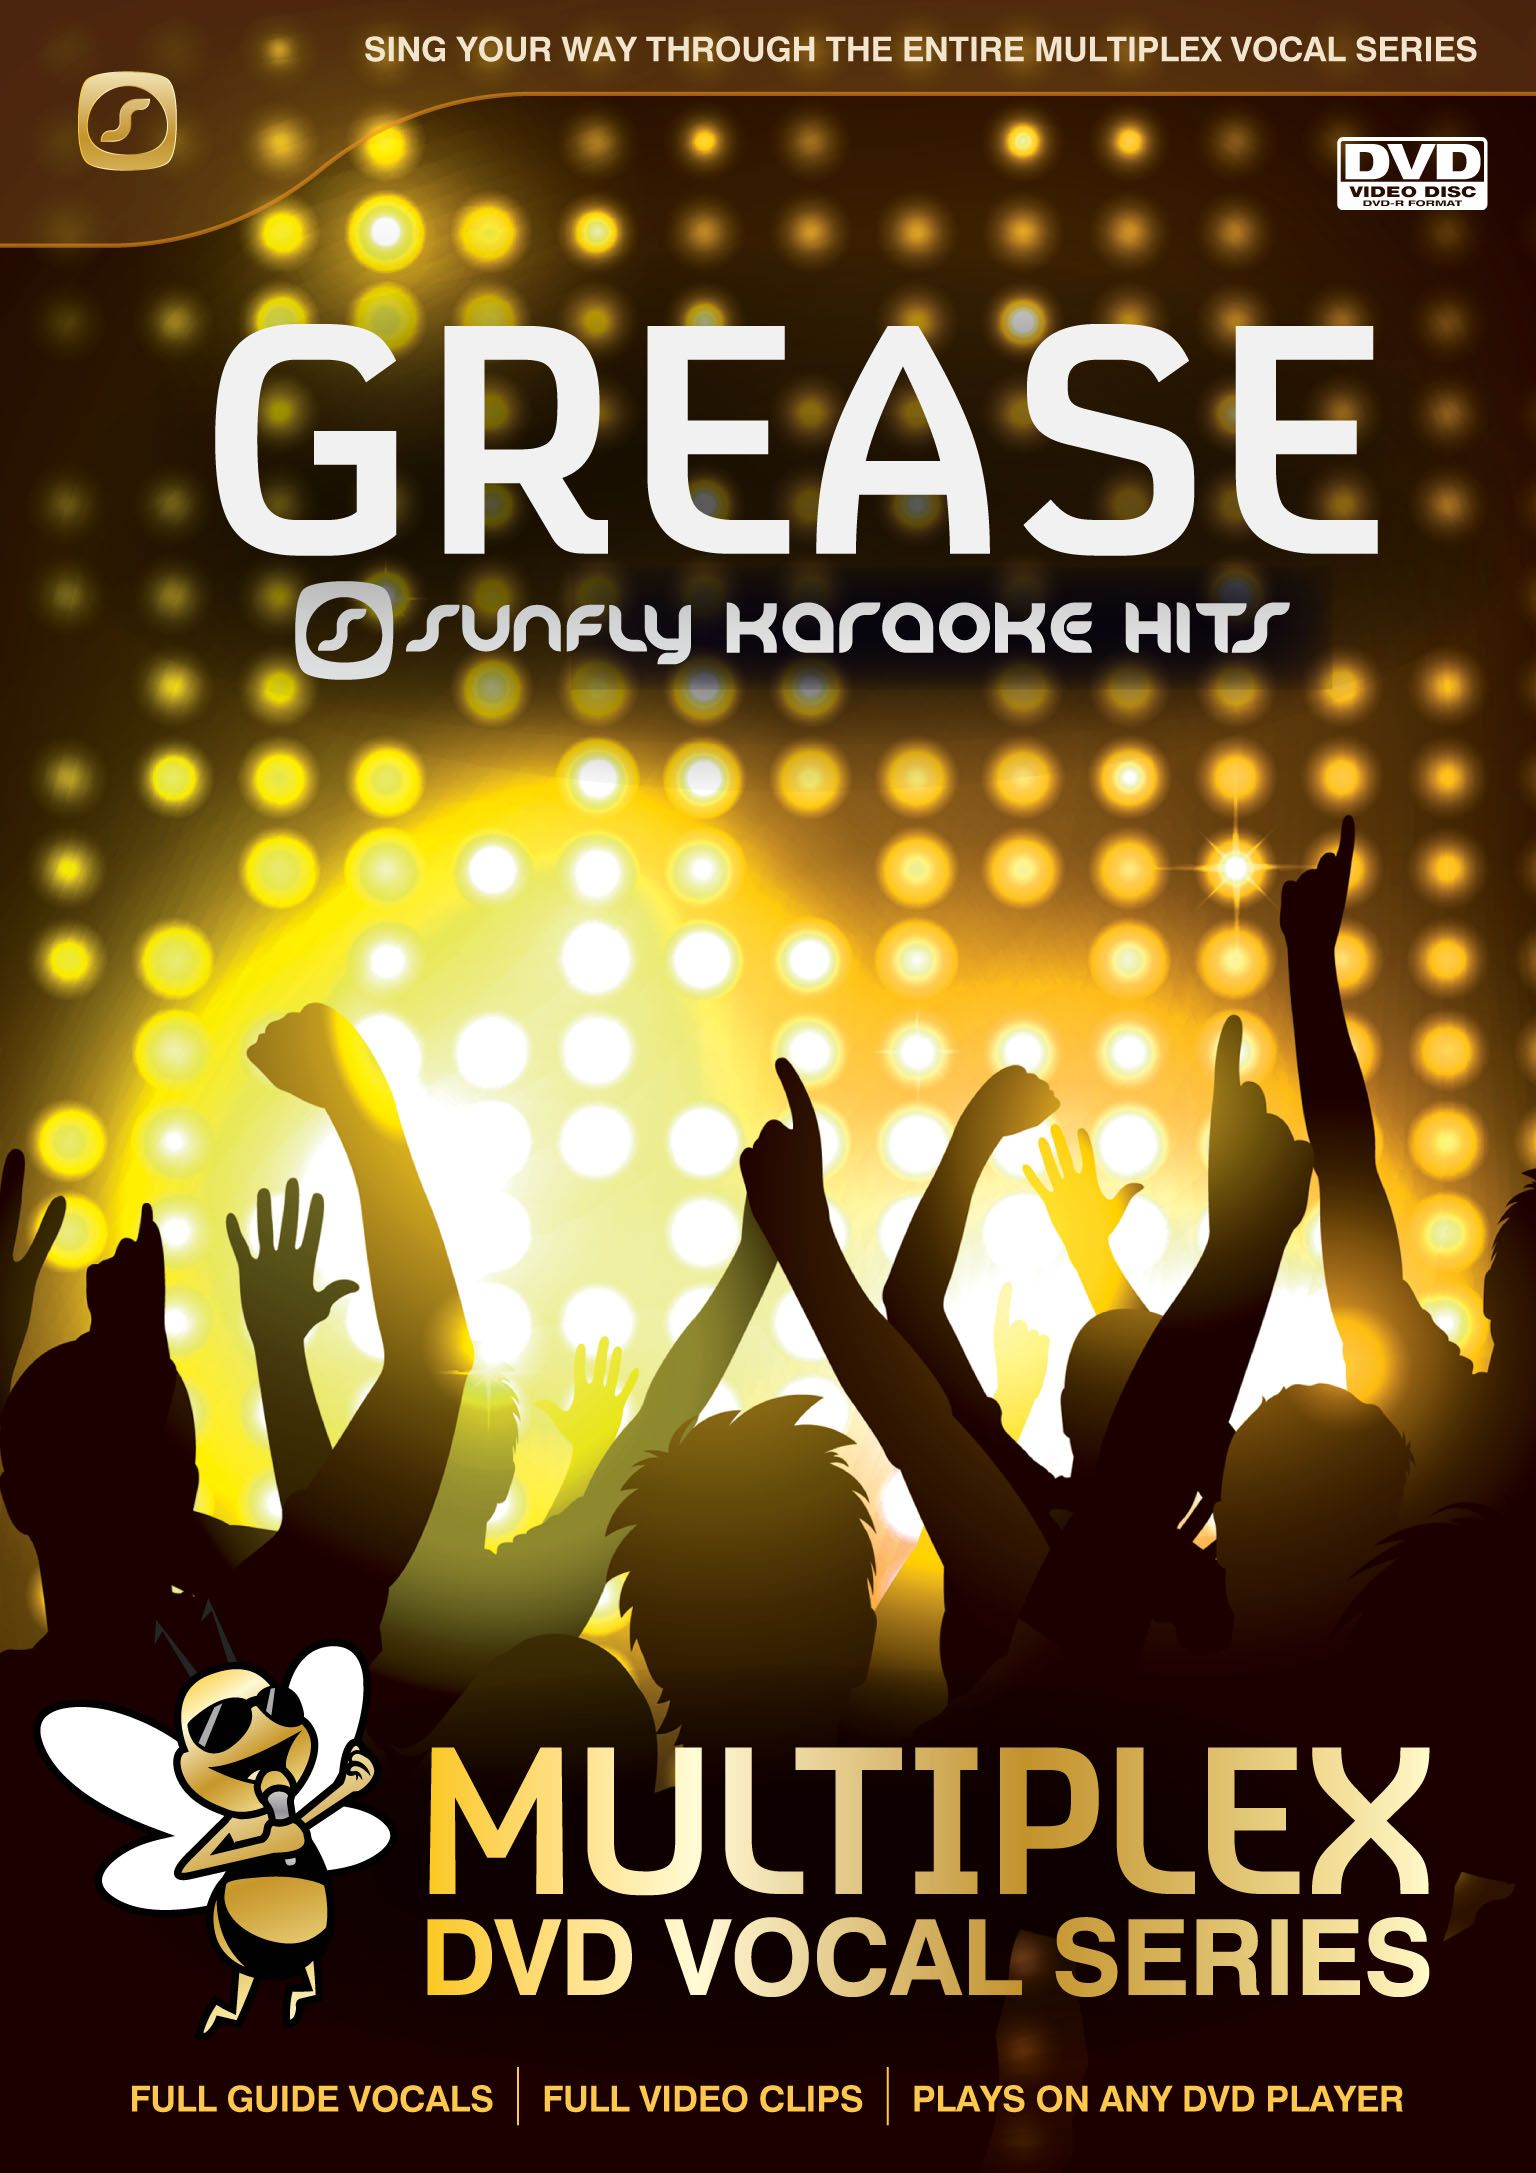 The Hits Of Grease On Karaoke Dvd With Vocals So You Can